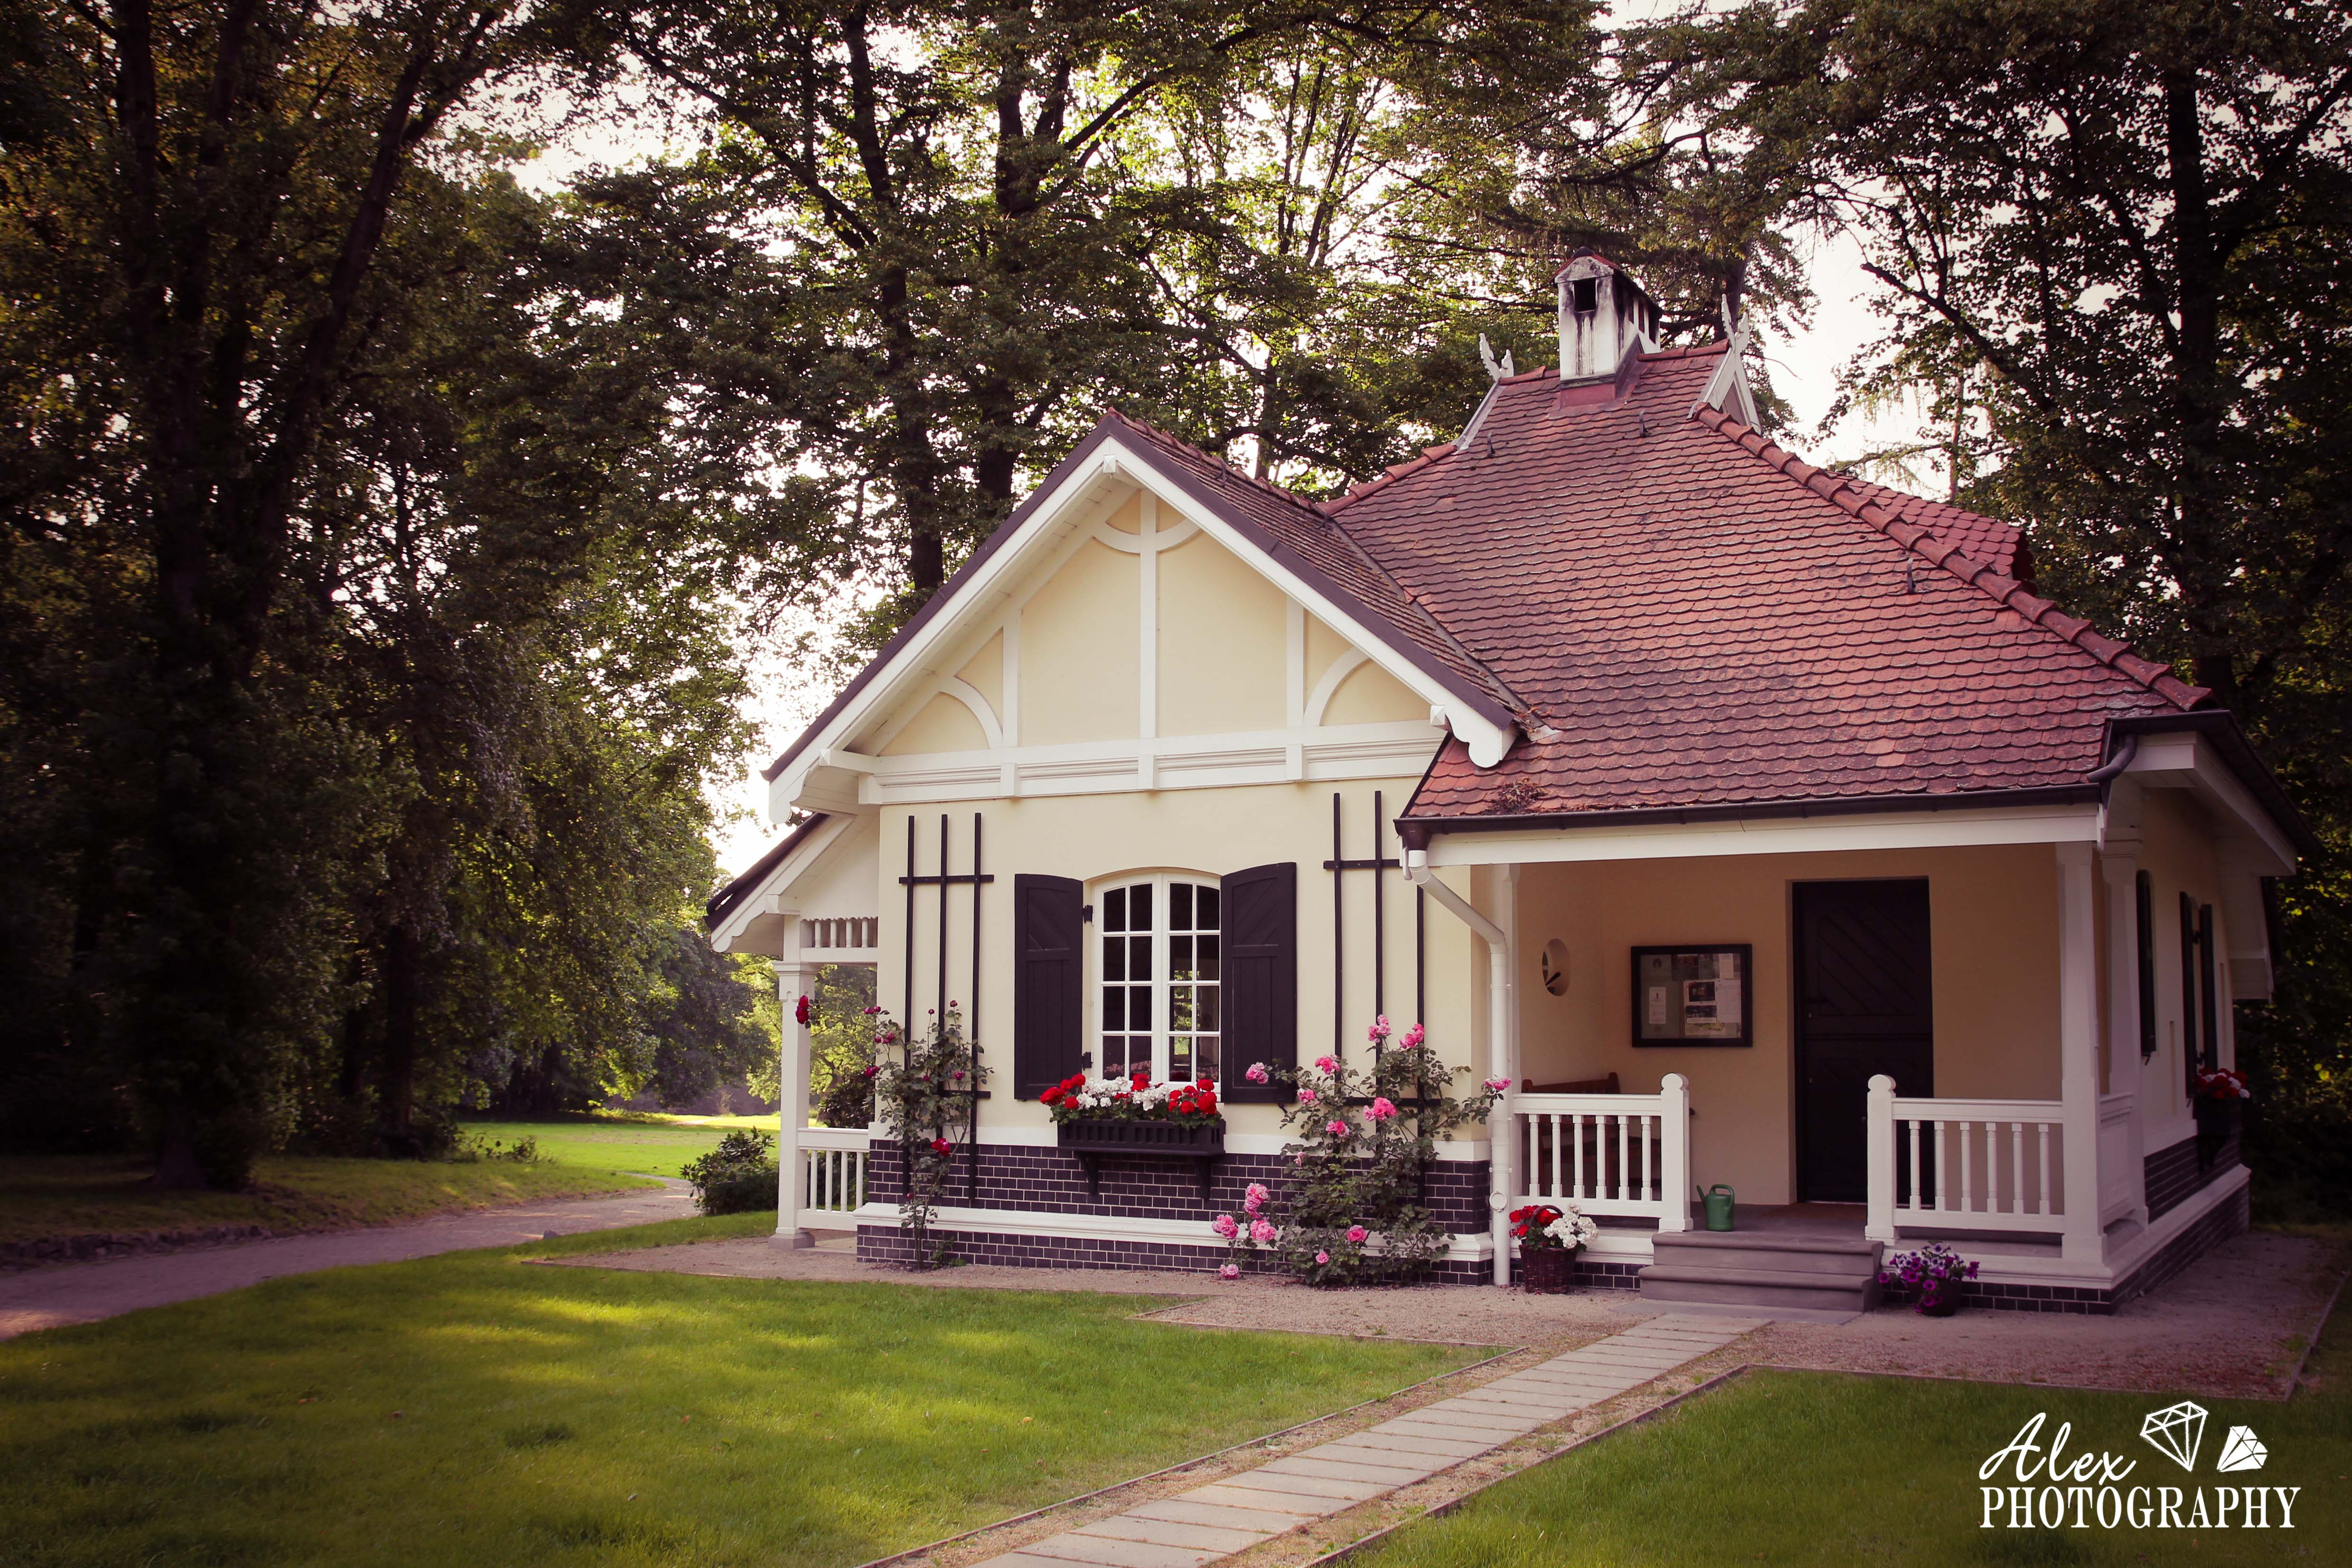 Cute house by muggi93 on deviantart for Cute house pictures